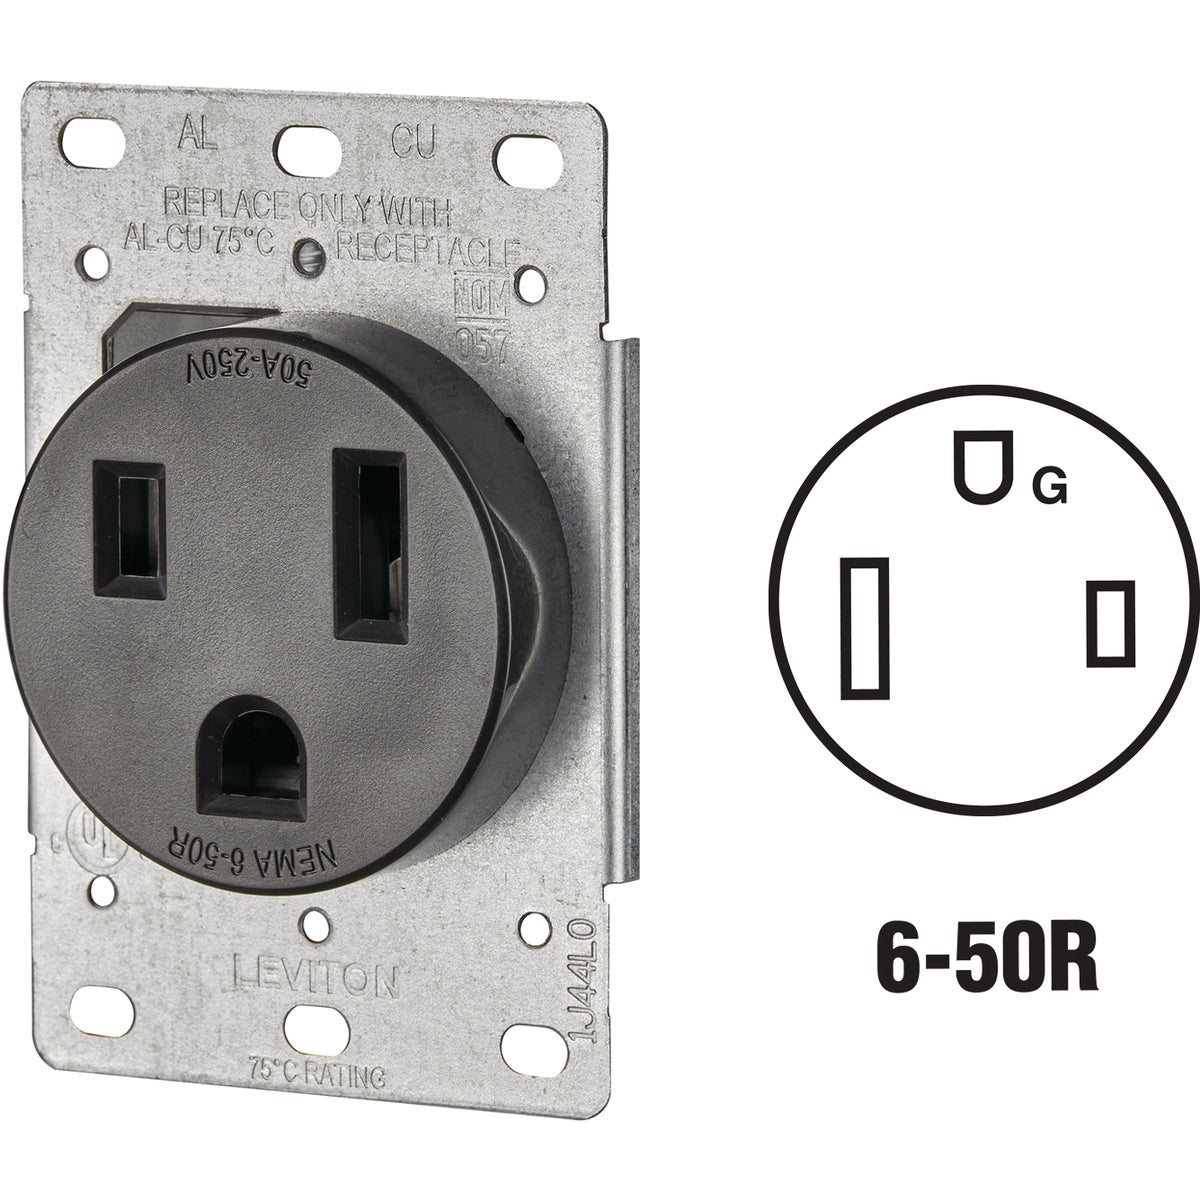 FLUSH WELDER OUTLET - R61-5374 by Leviton Mfg Co